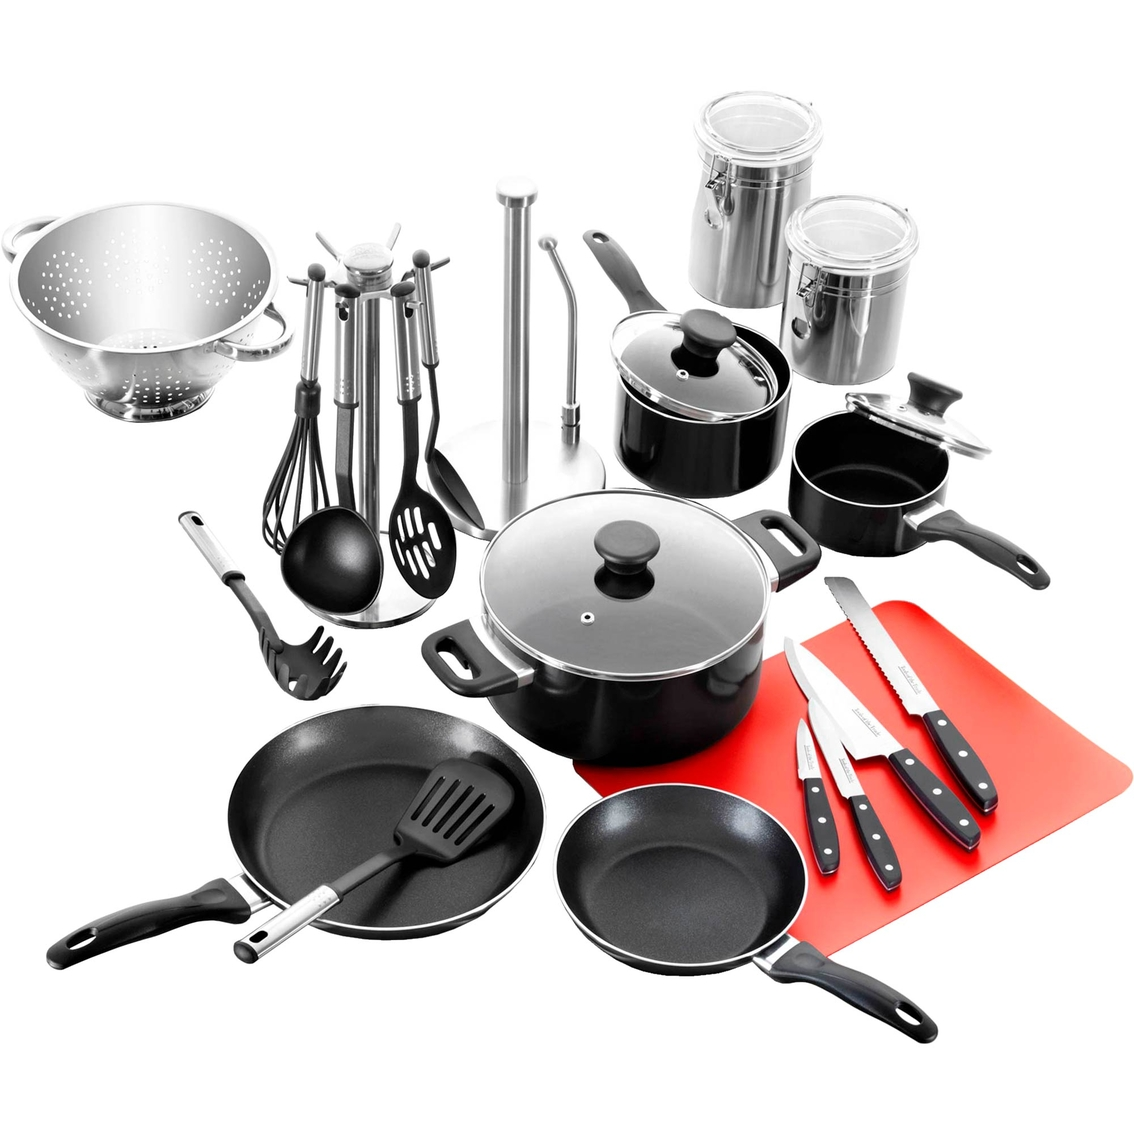 Tools Of The Trade Cookware Set 24 Pc Aluminum Home